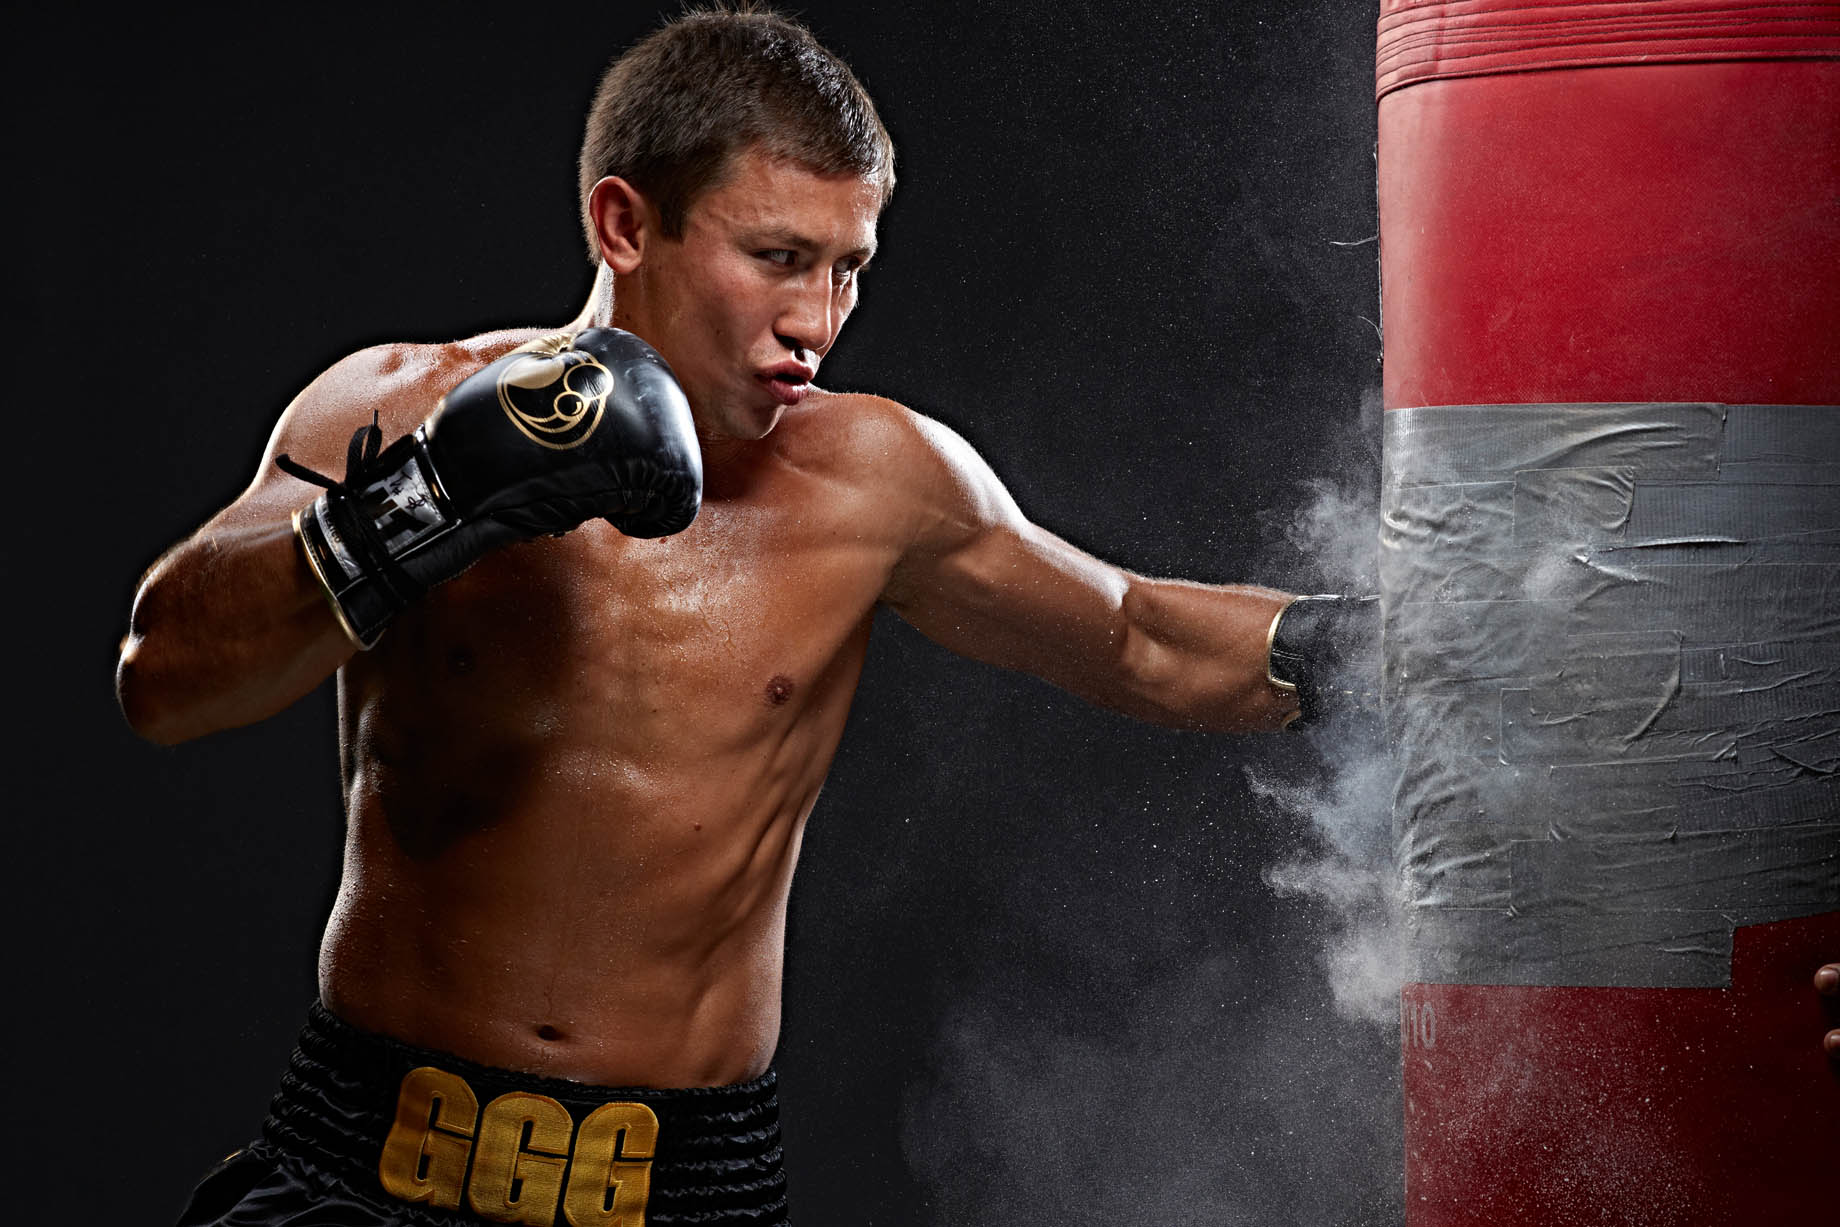 Gennady Golovkin for HBO boxing photo by Monte Isom